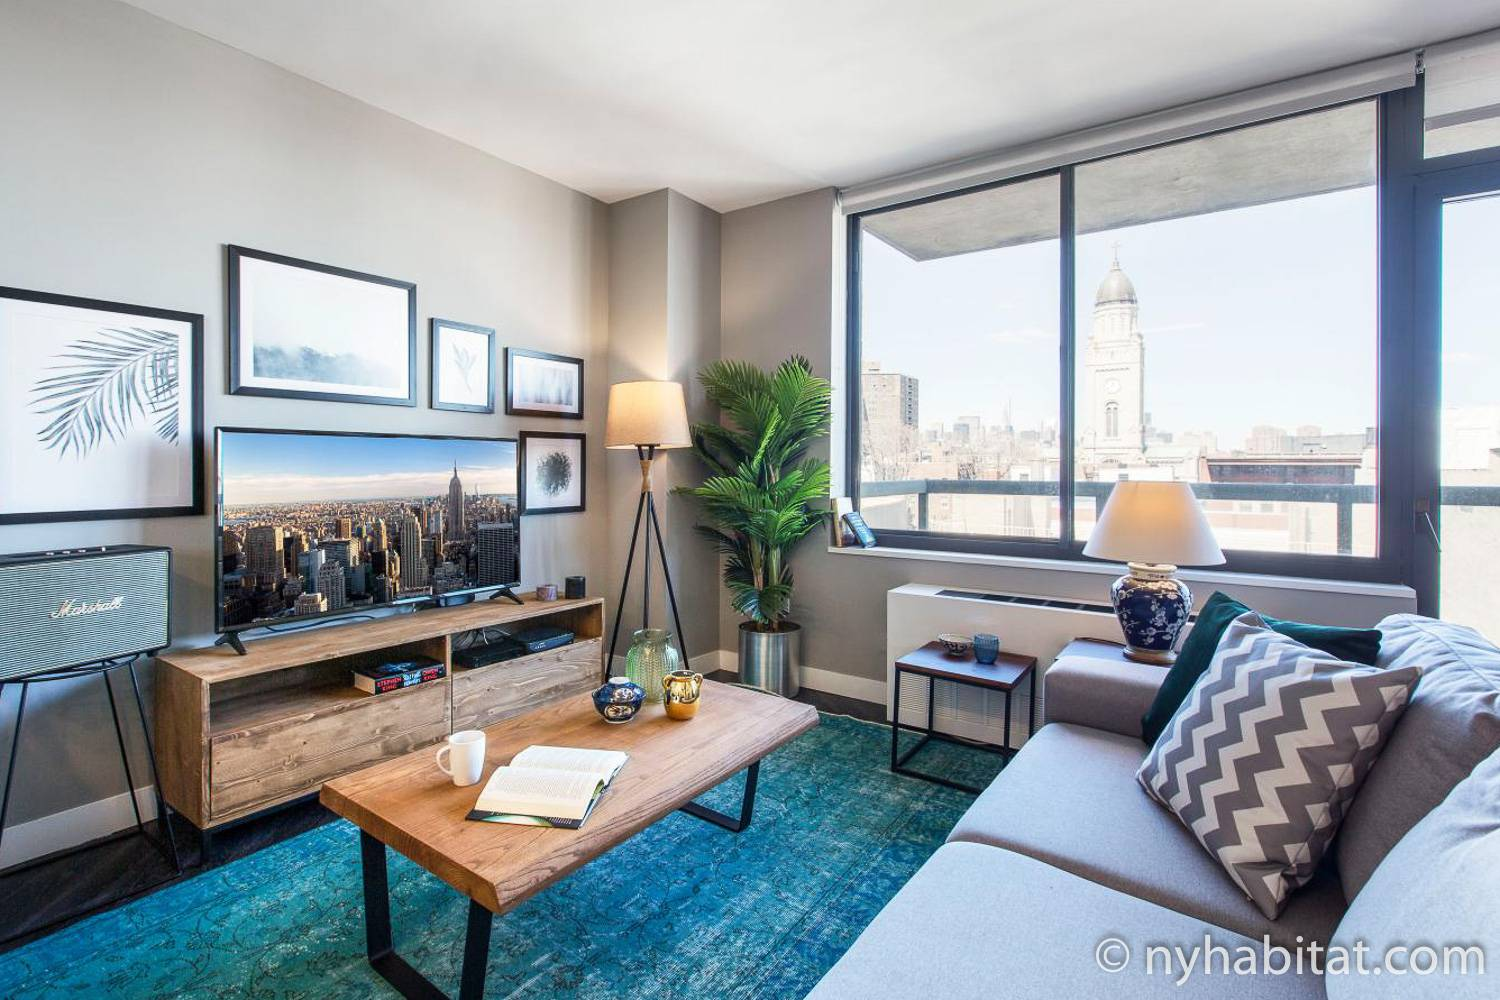 Image of living room of 1 bedroom furnished rental NY-17716 in the East Village with city views